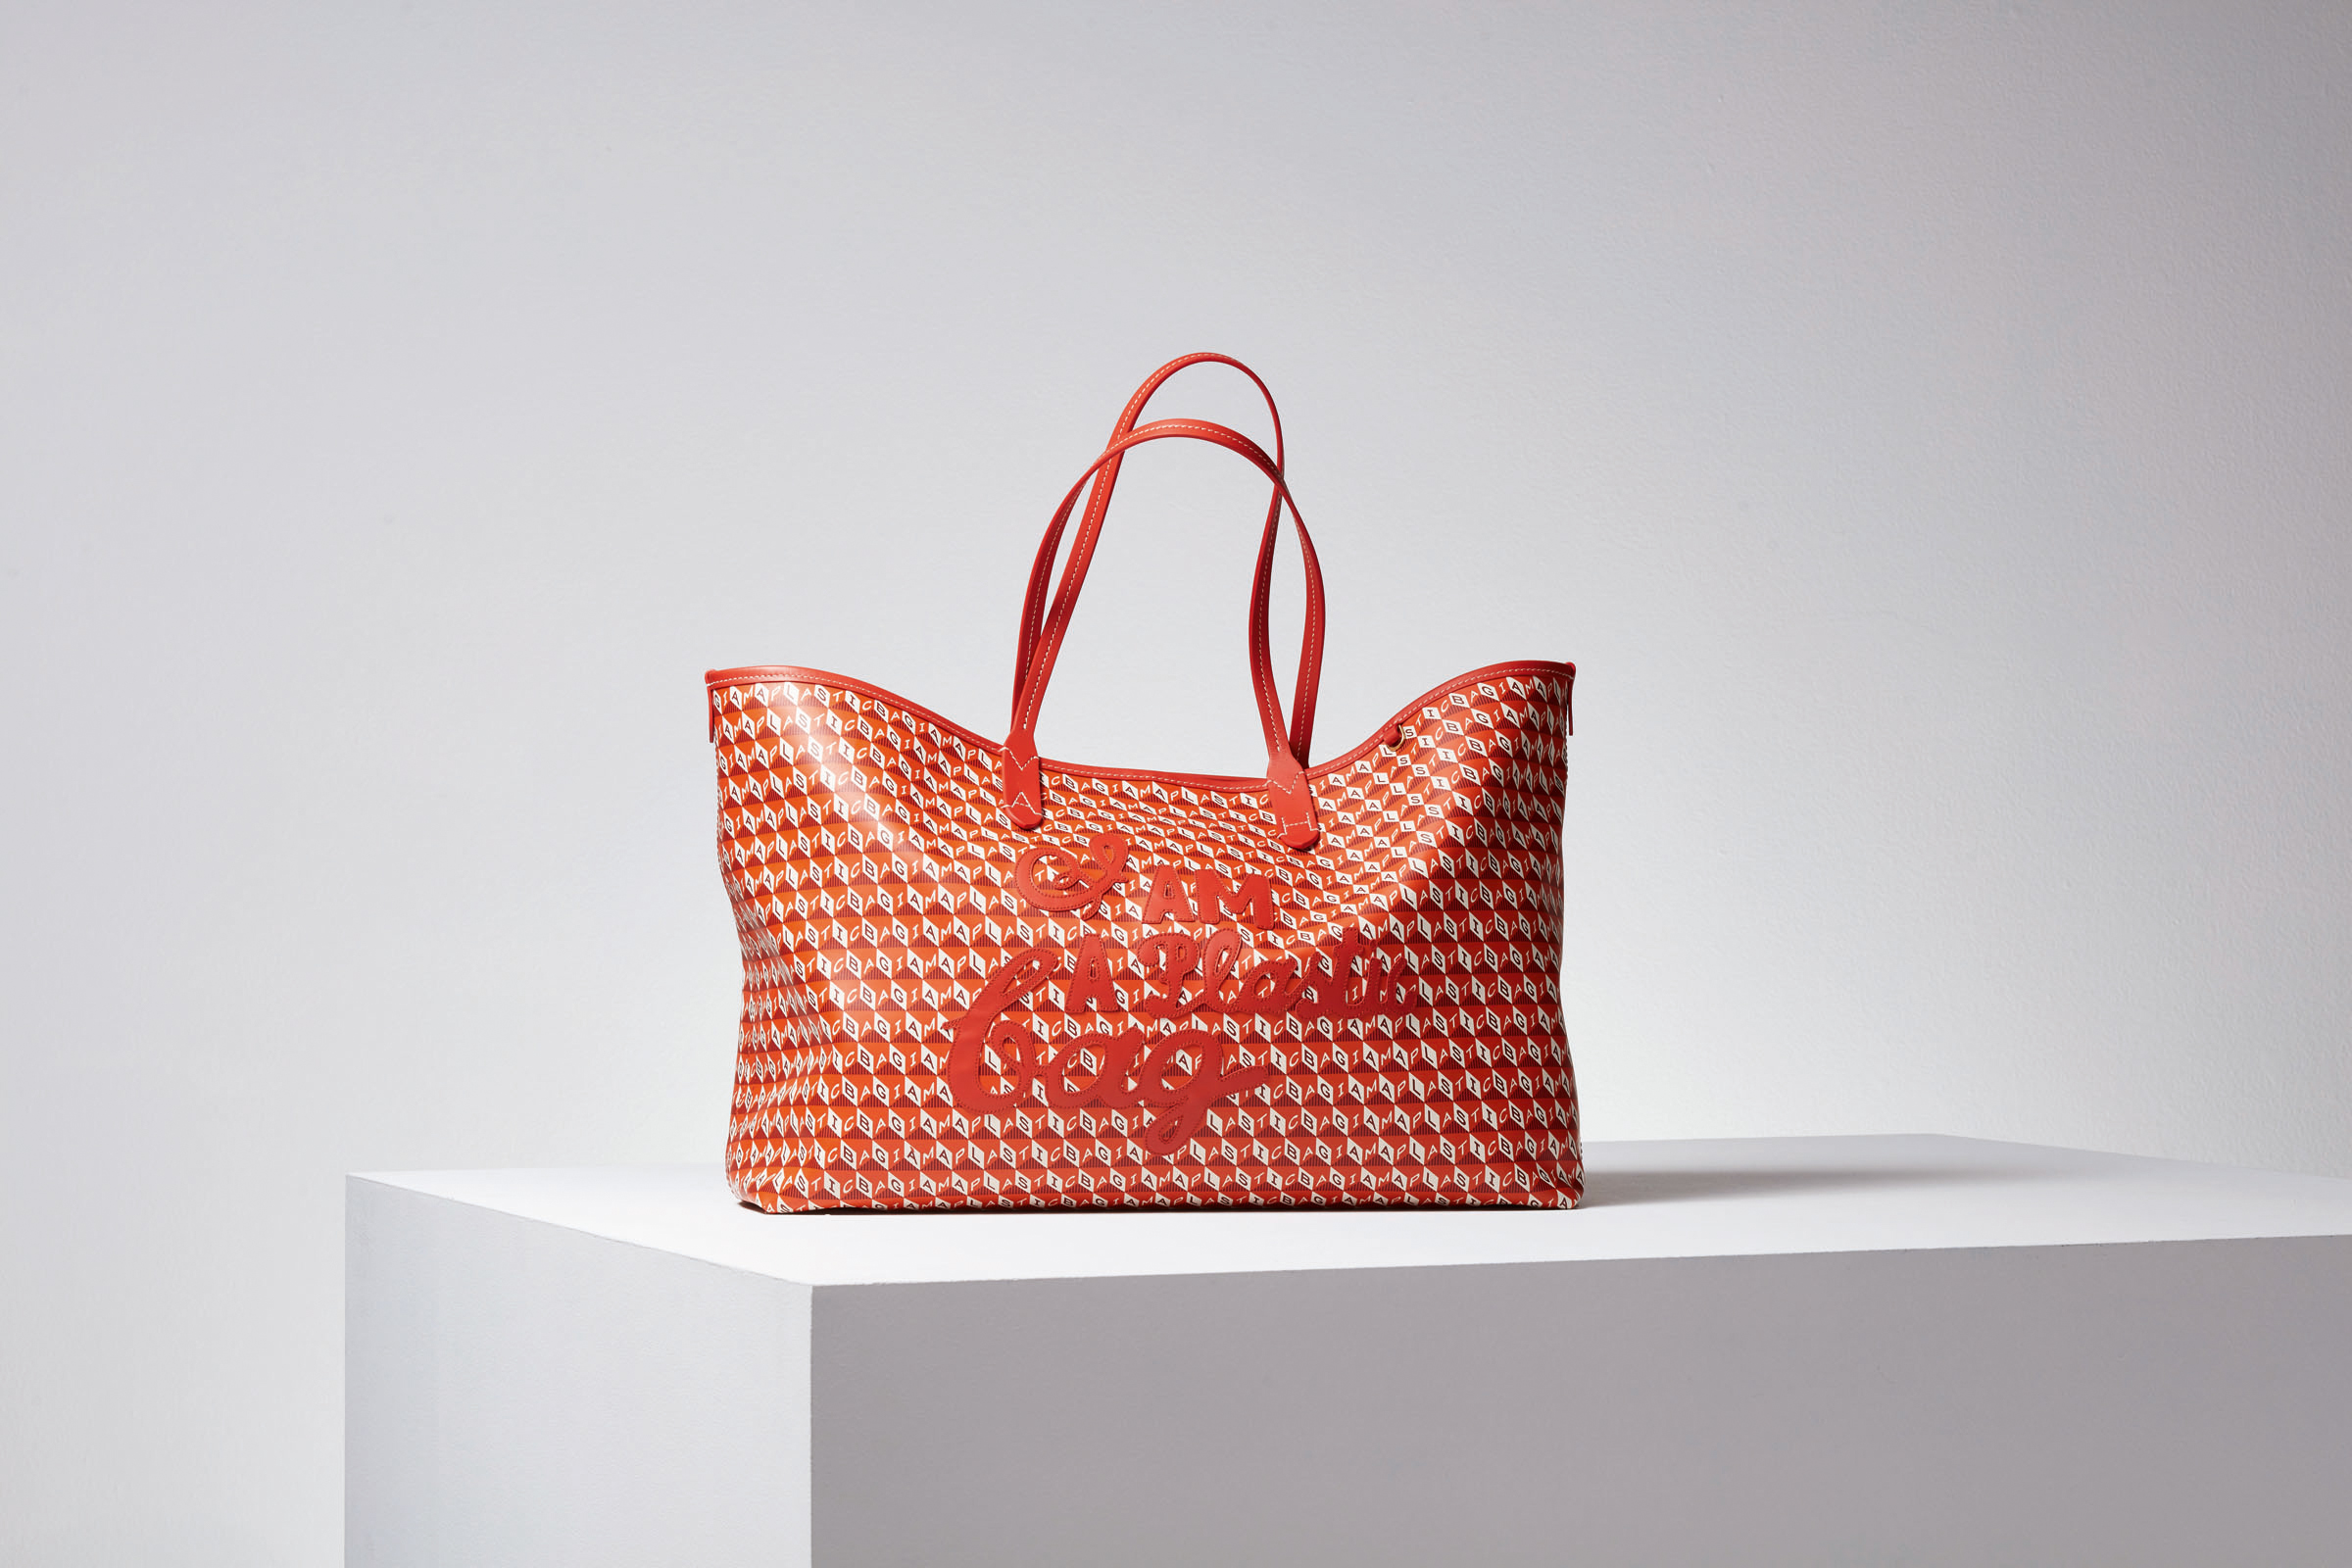 Exclusive: Anya Hindmarch launches I Am a Plastic Bag